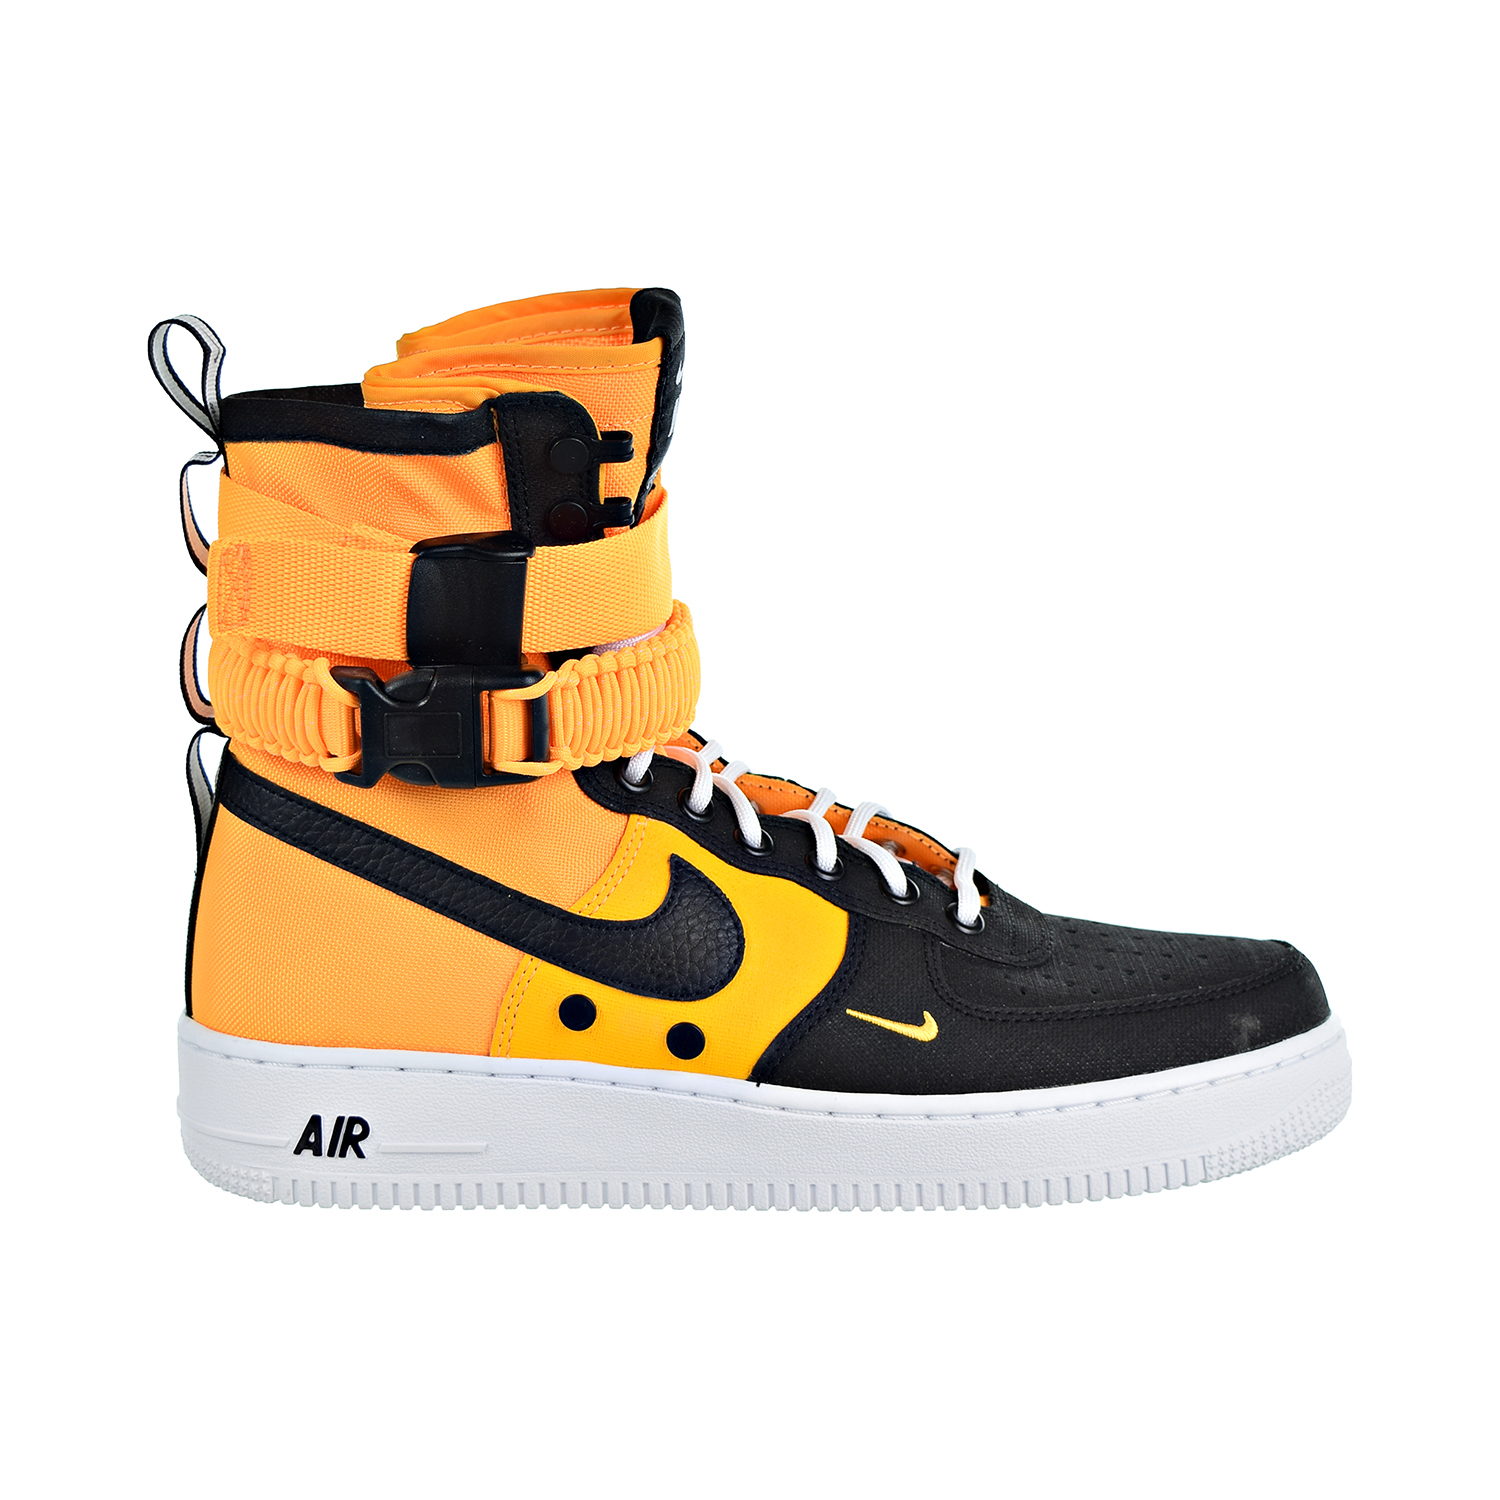 official photos 059eb 15f14 Nike SF Air Force 1 Men's Shoes Laser Orange/Black/White 864024-800 ...